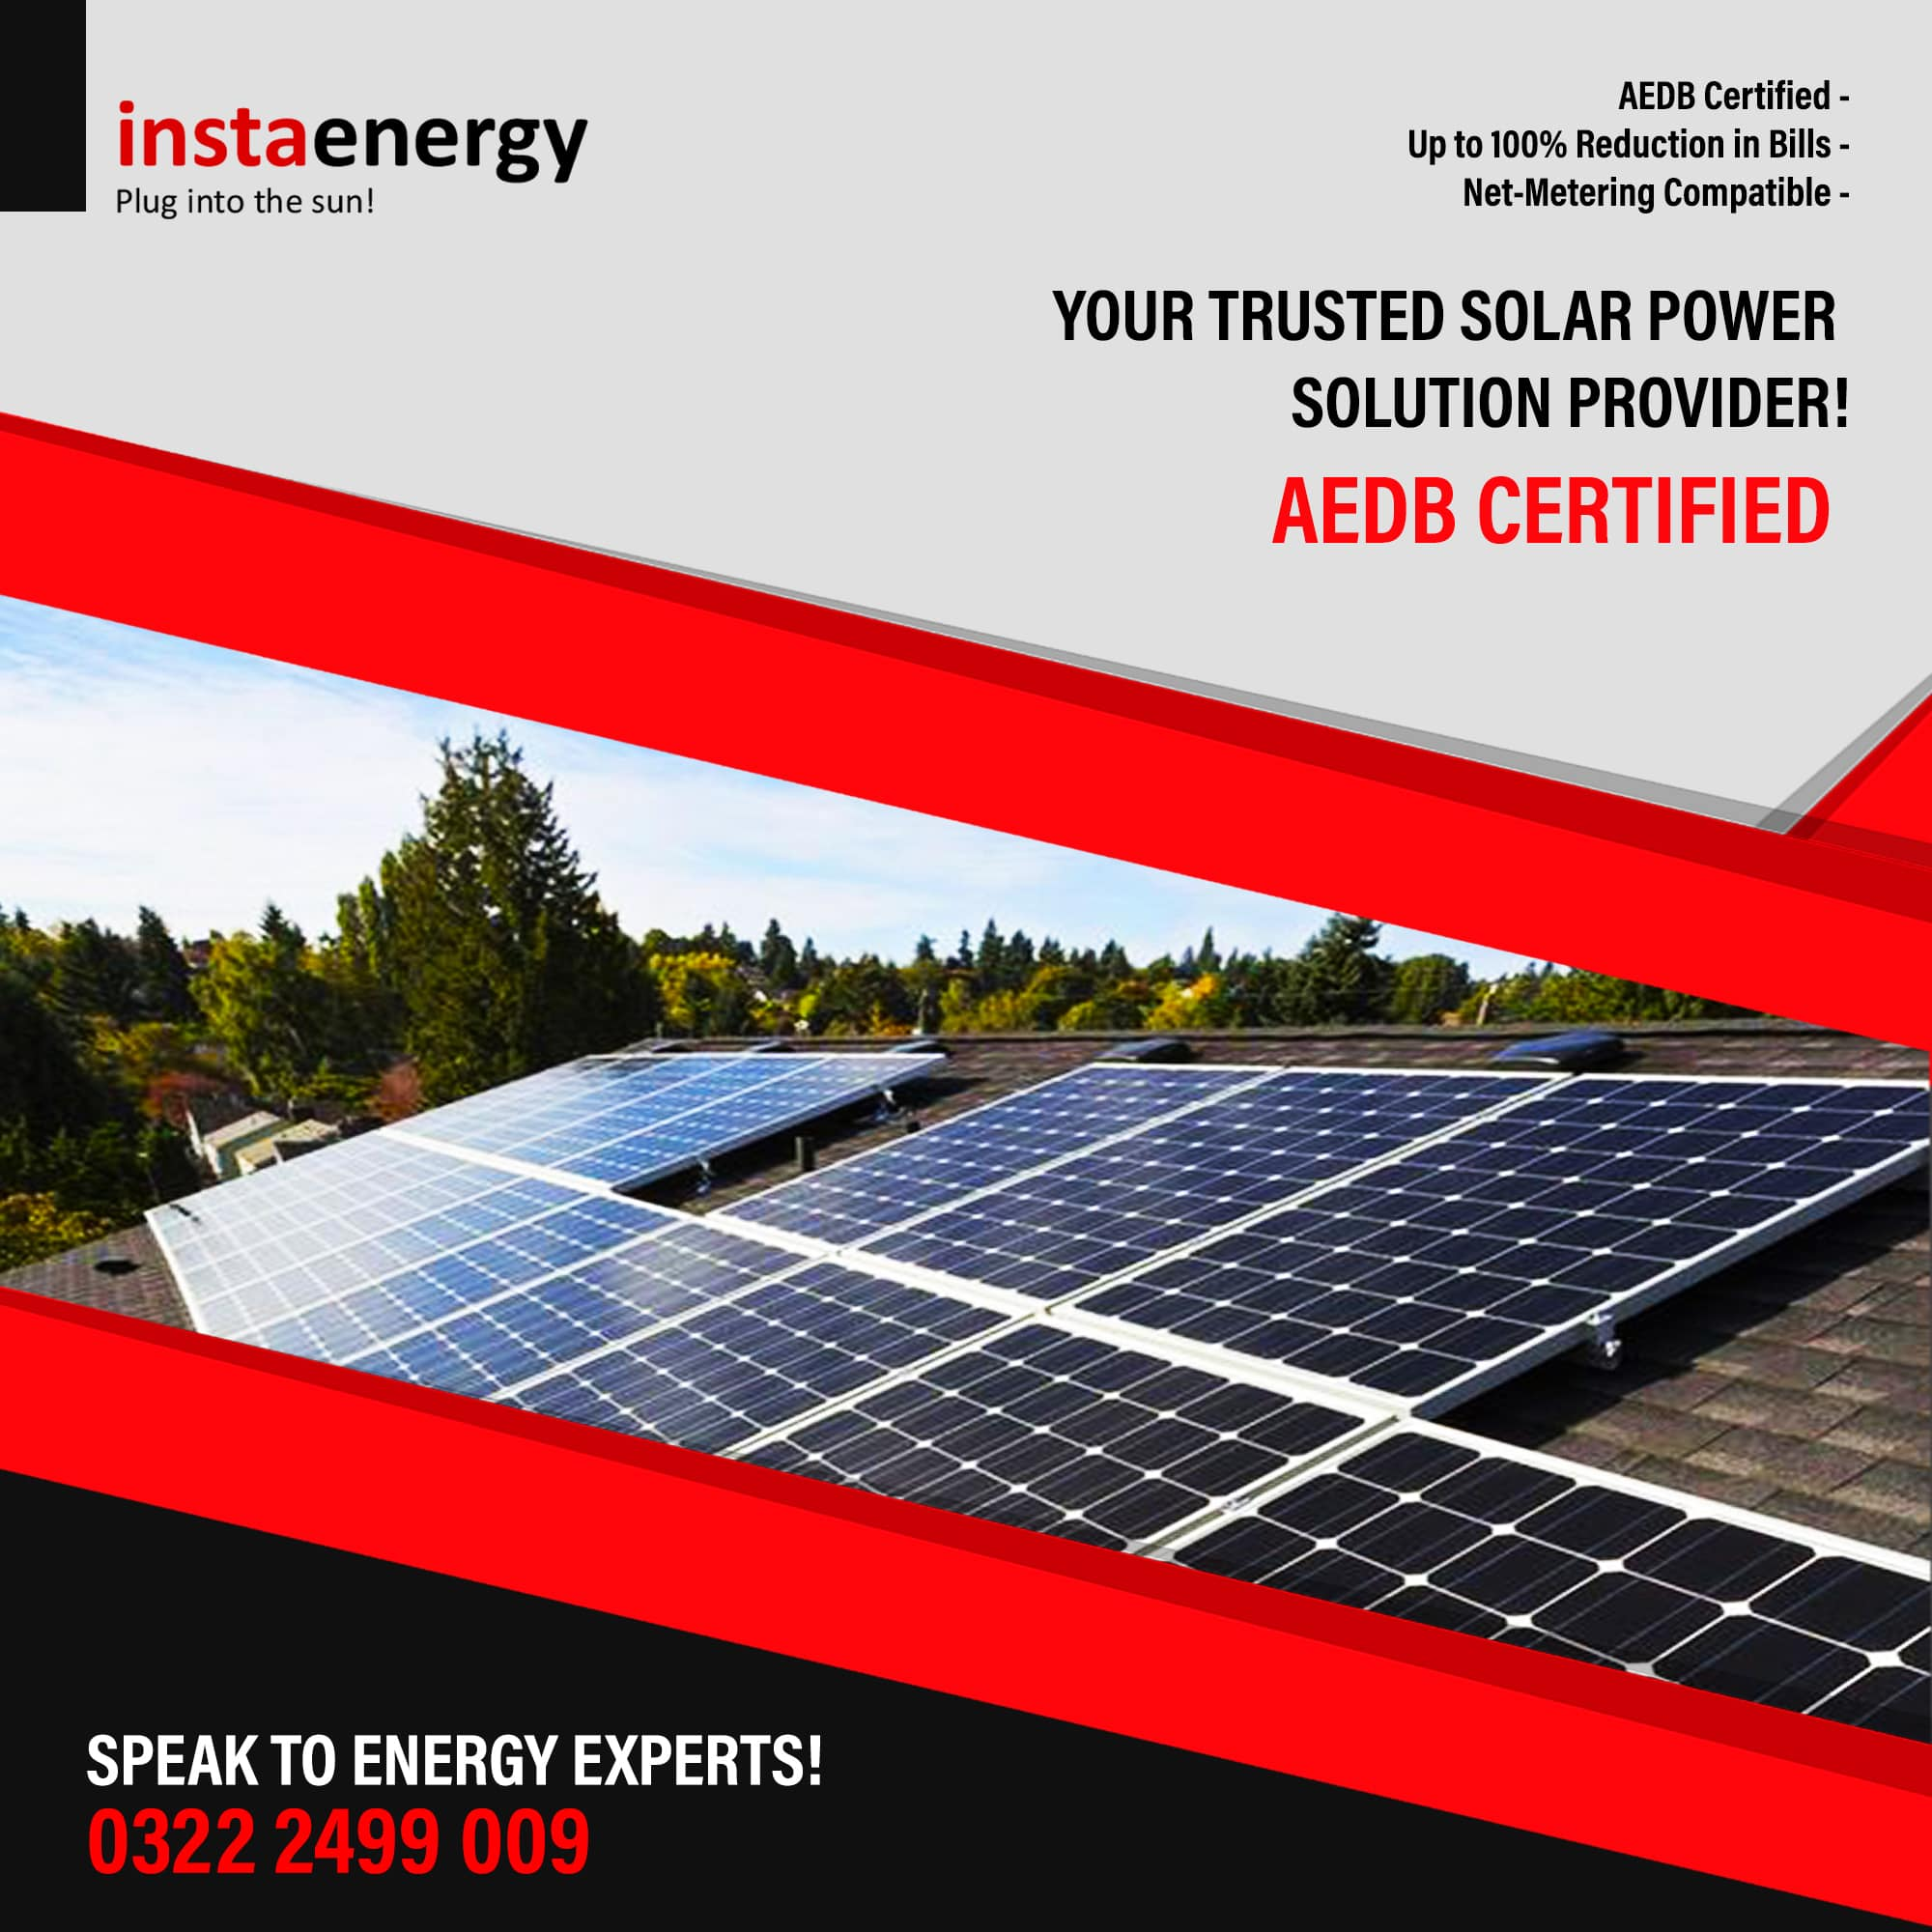 AEDB certificate banner showing solar panels